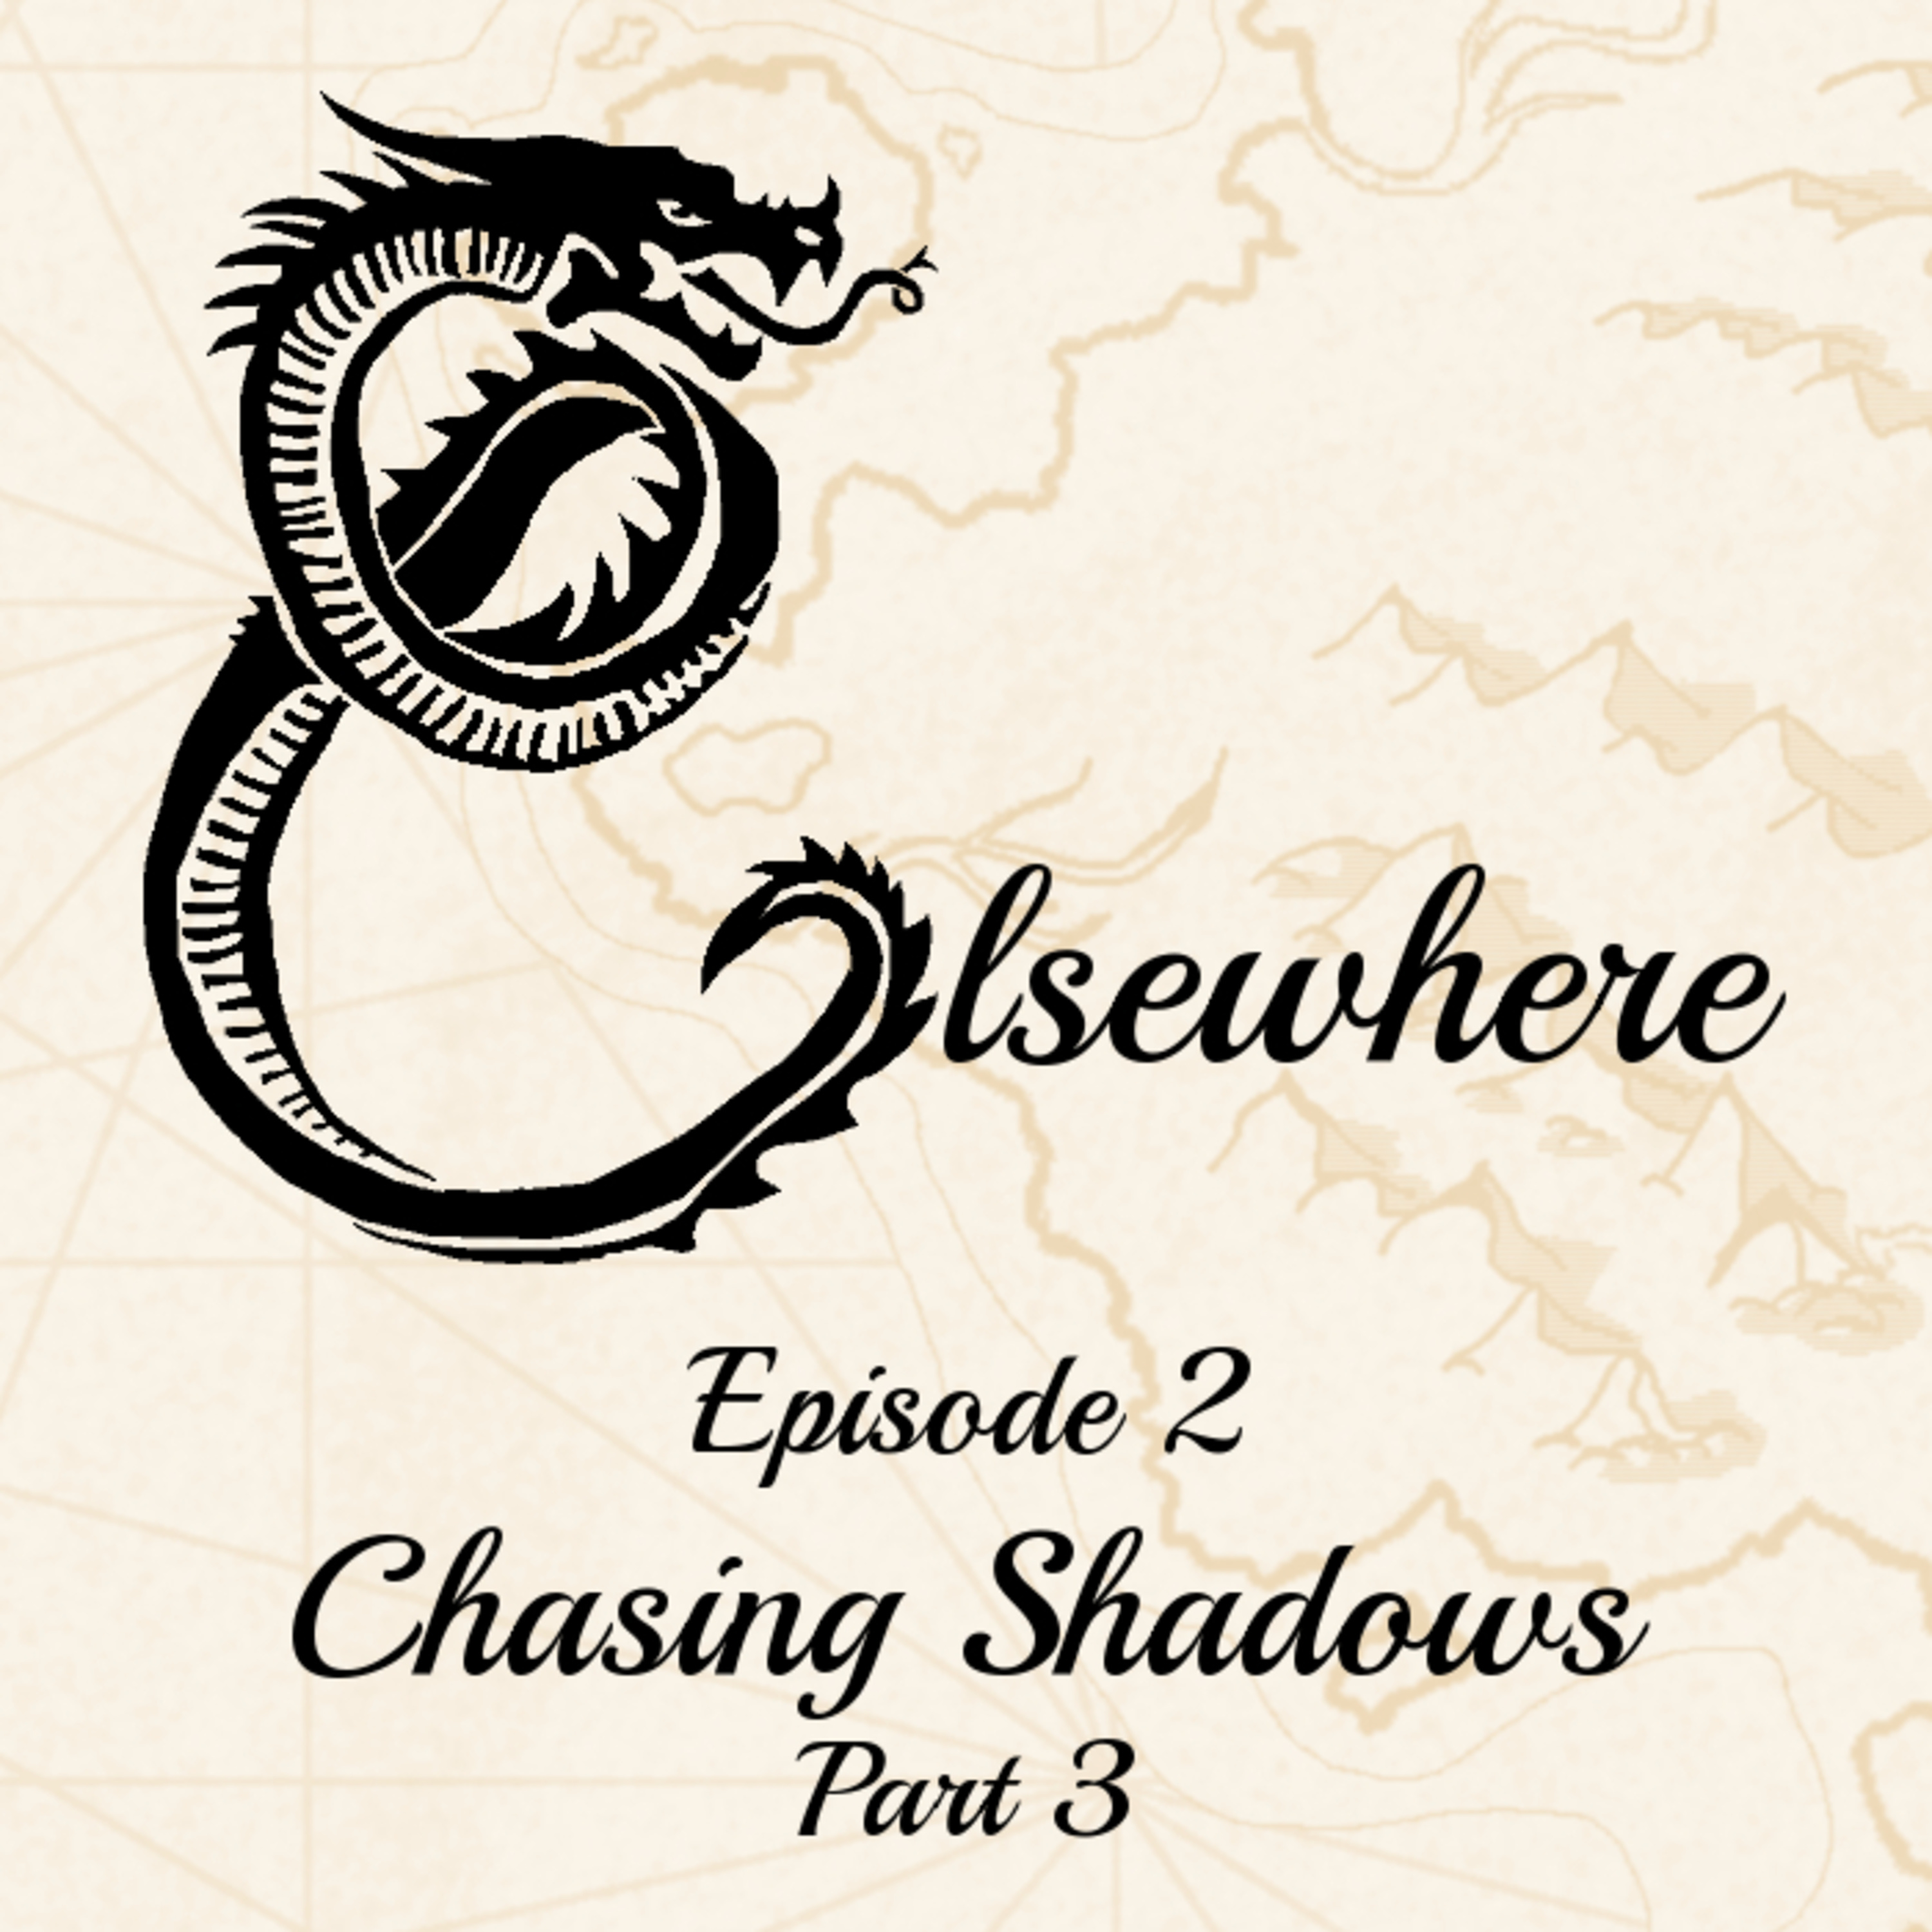 Elsewhere Episode 2 Part 3 Chasing Shadows